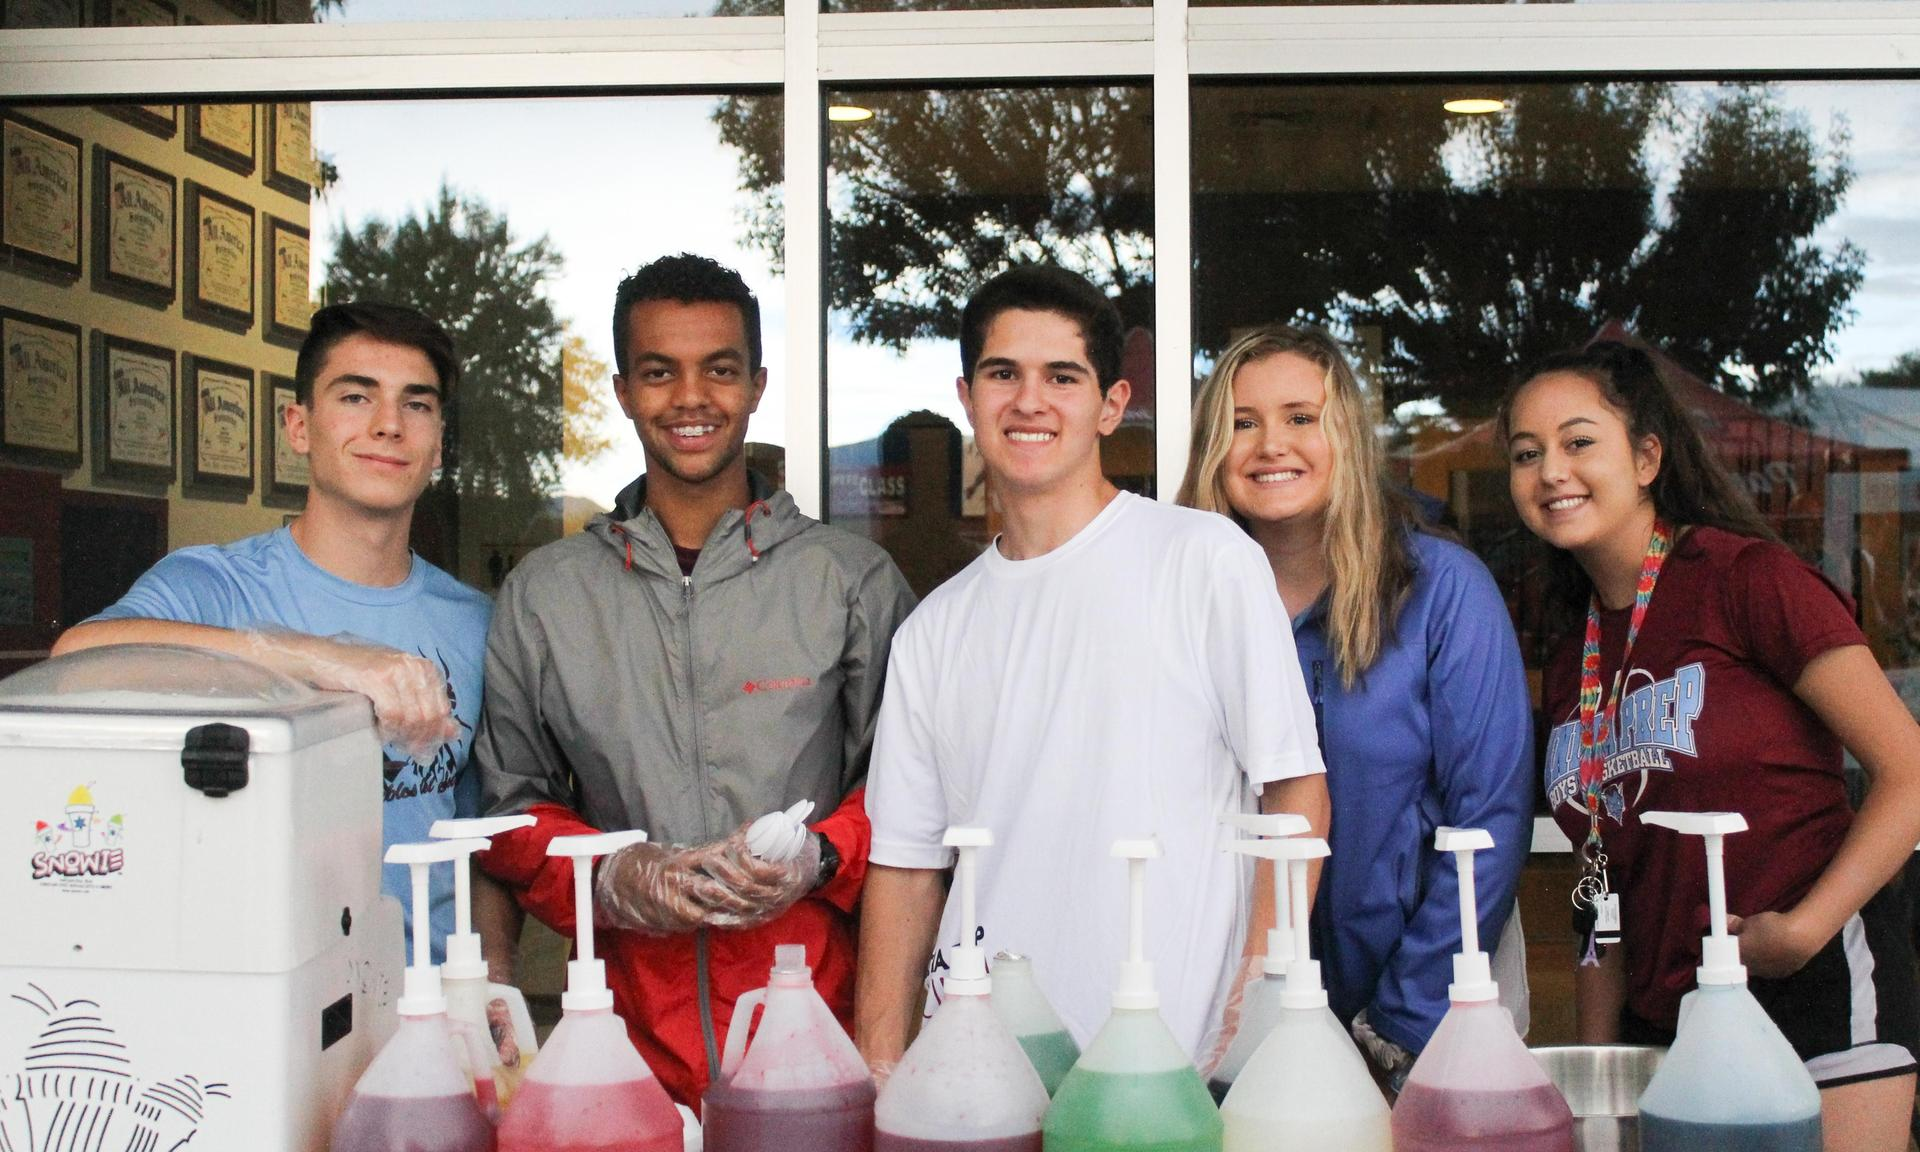 Students smile at the camera